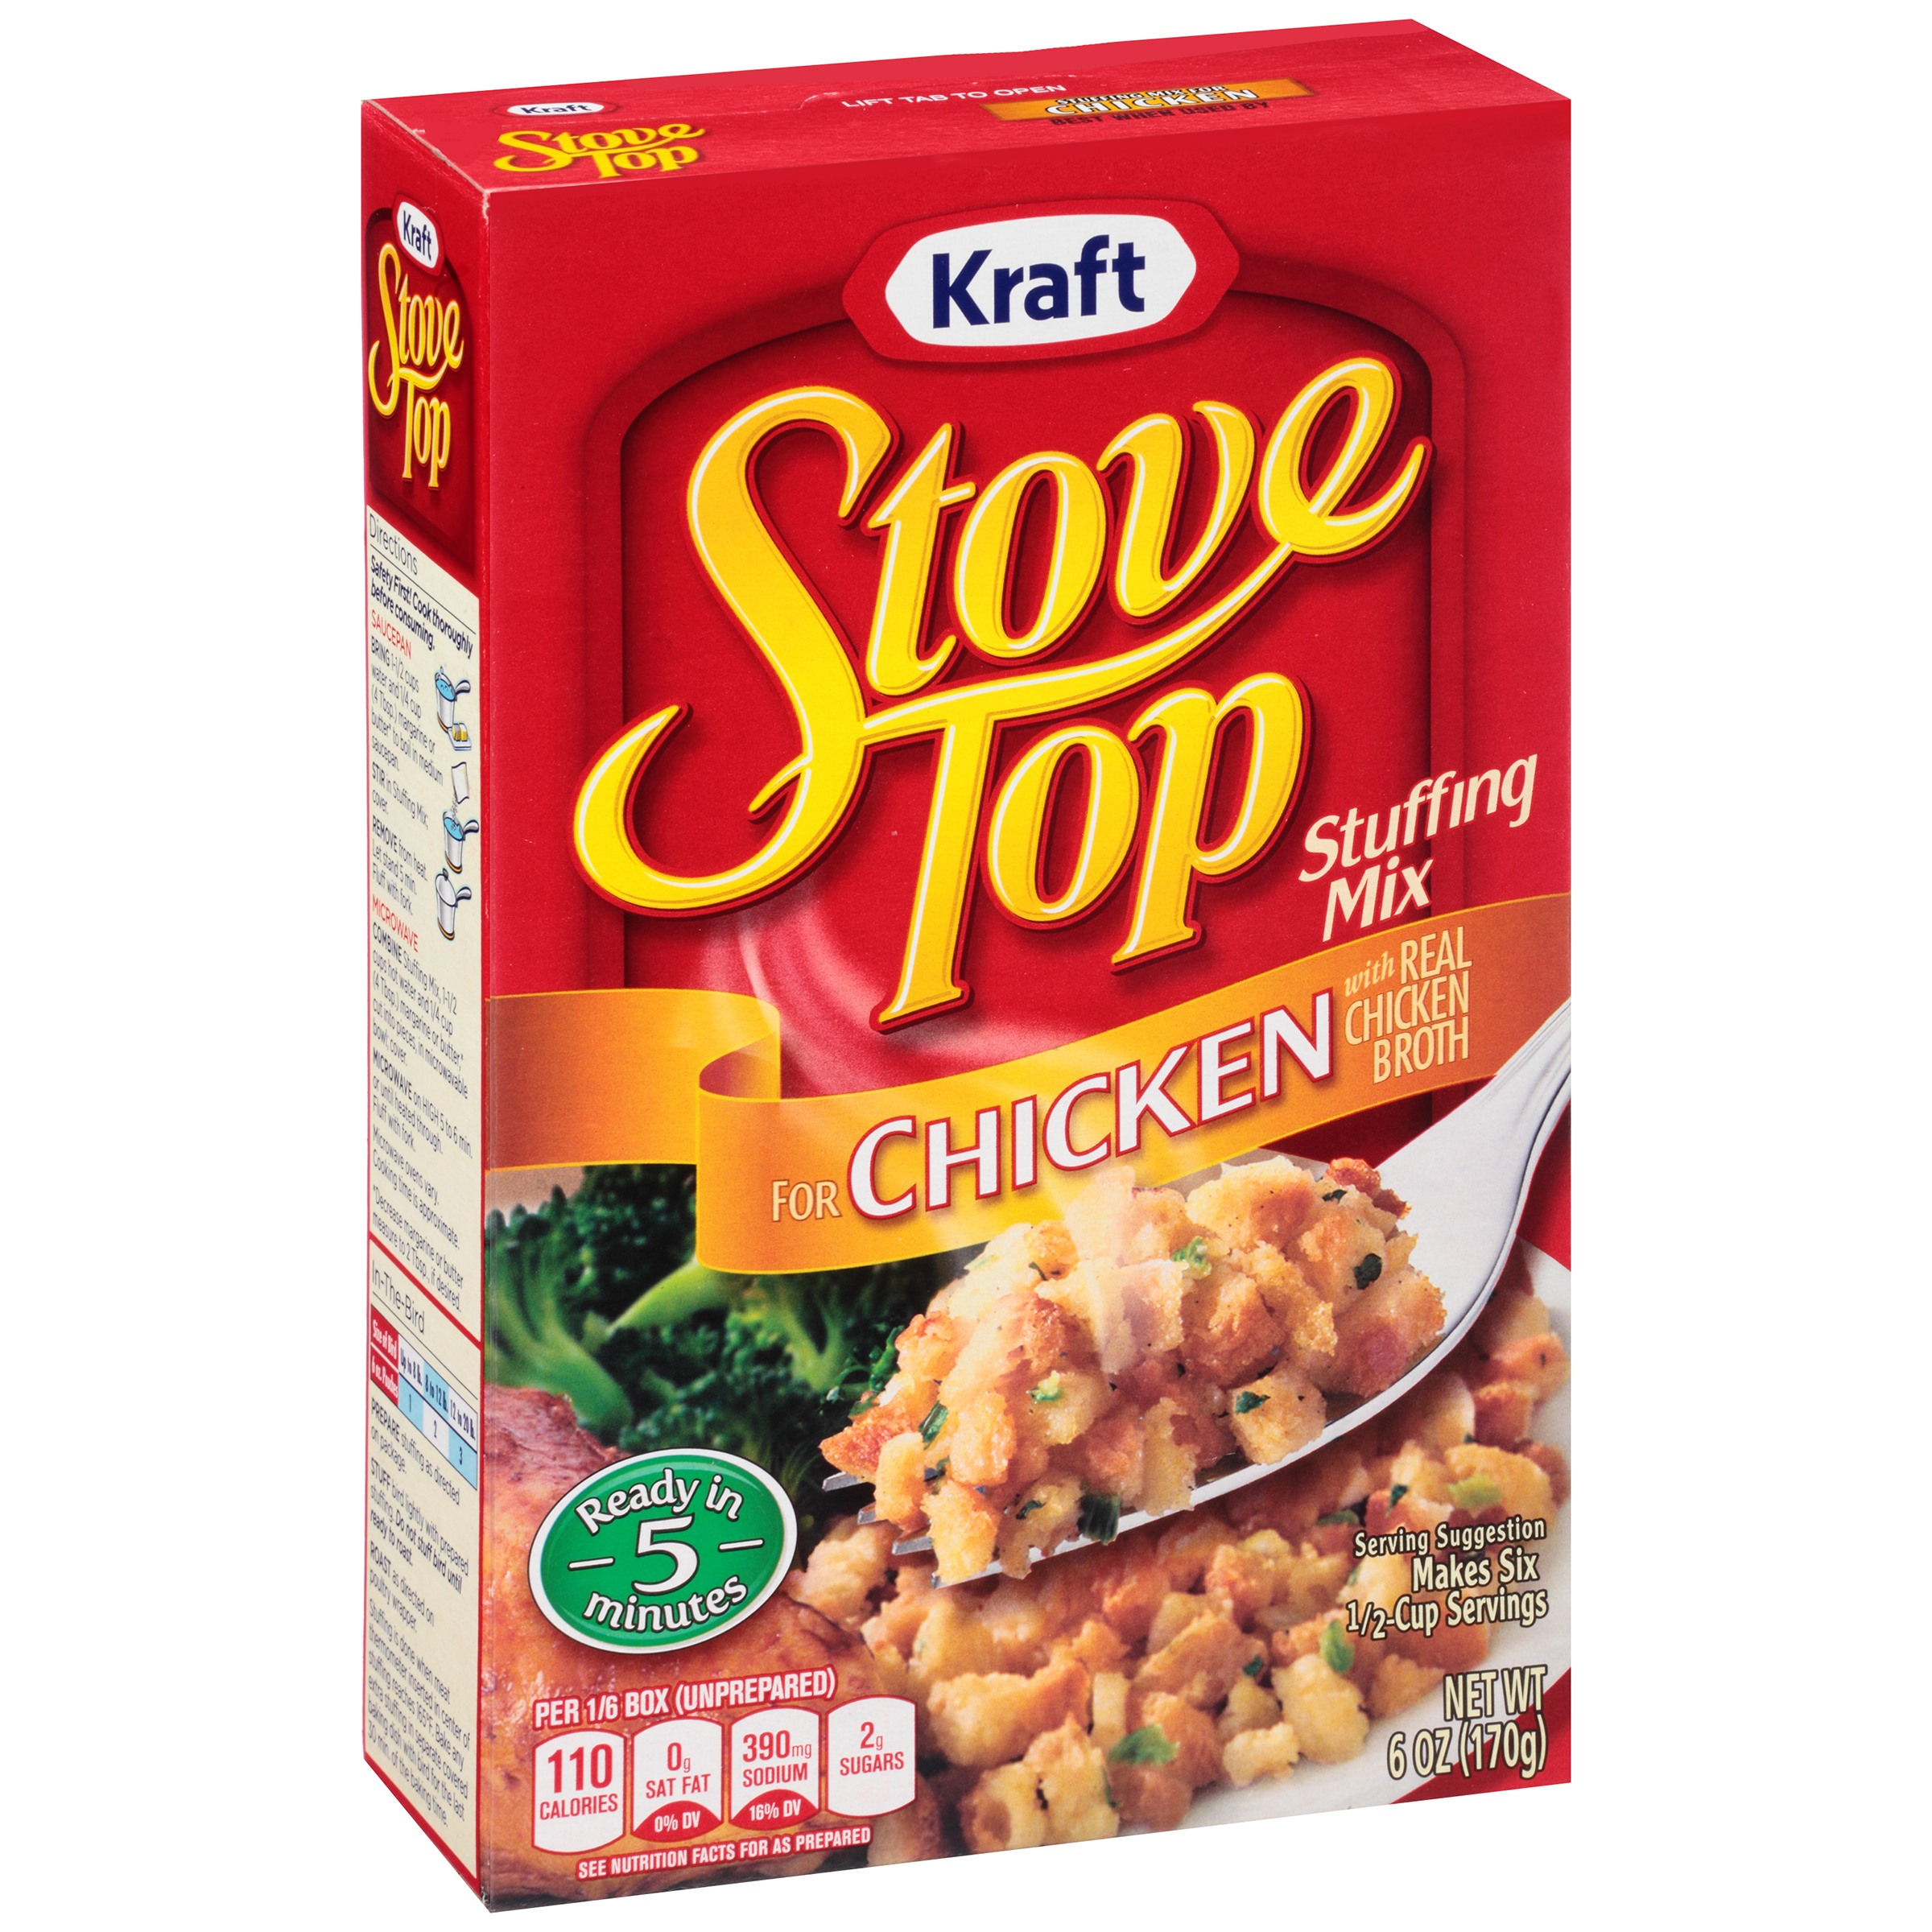 Stove top stuffing recipes for chicken - Best chicken recipes